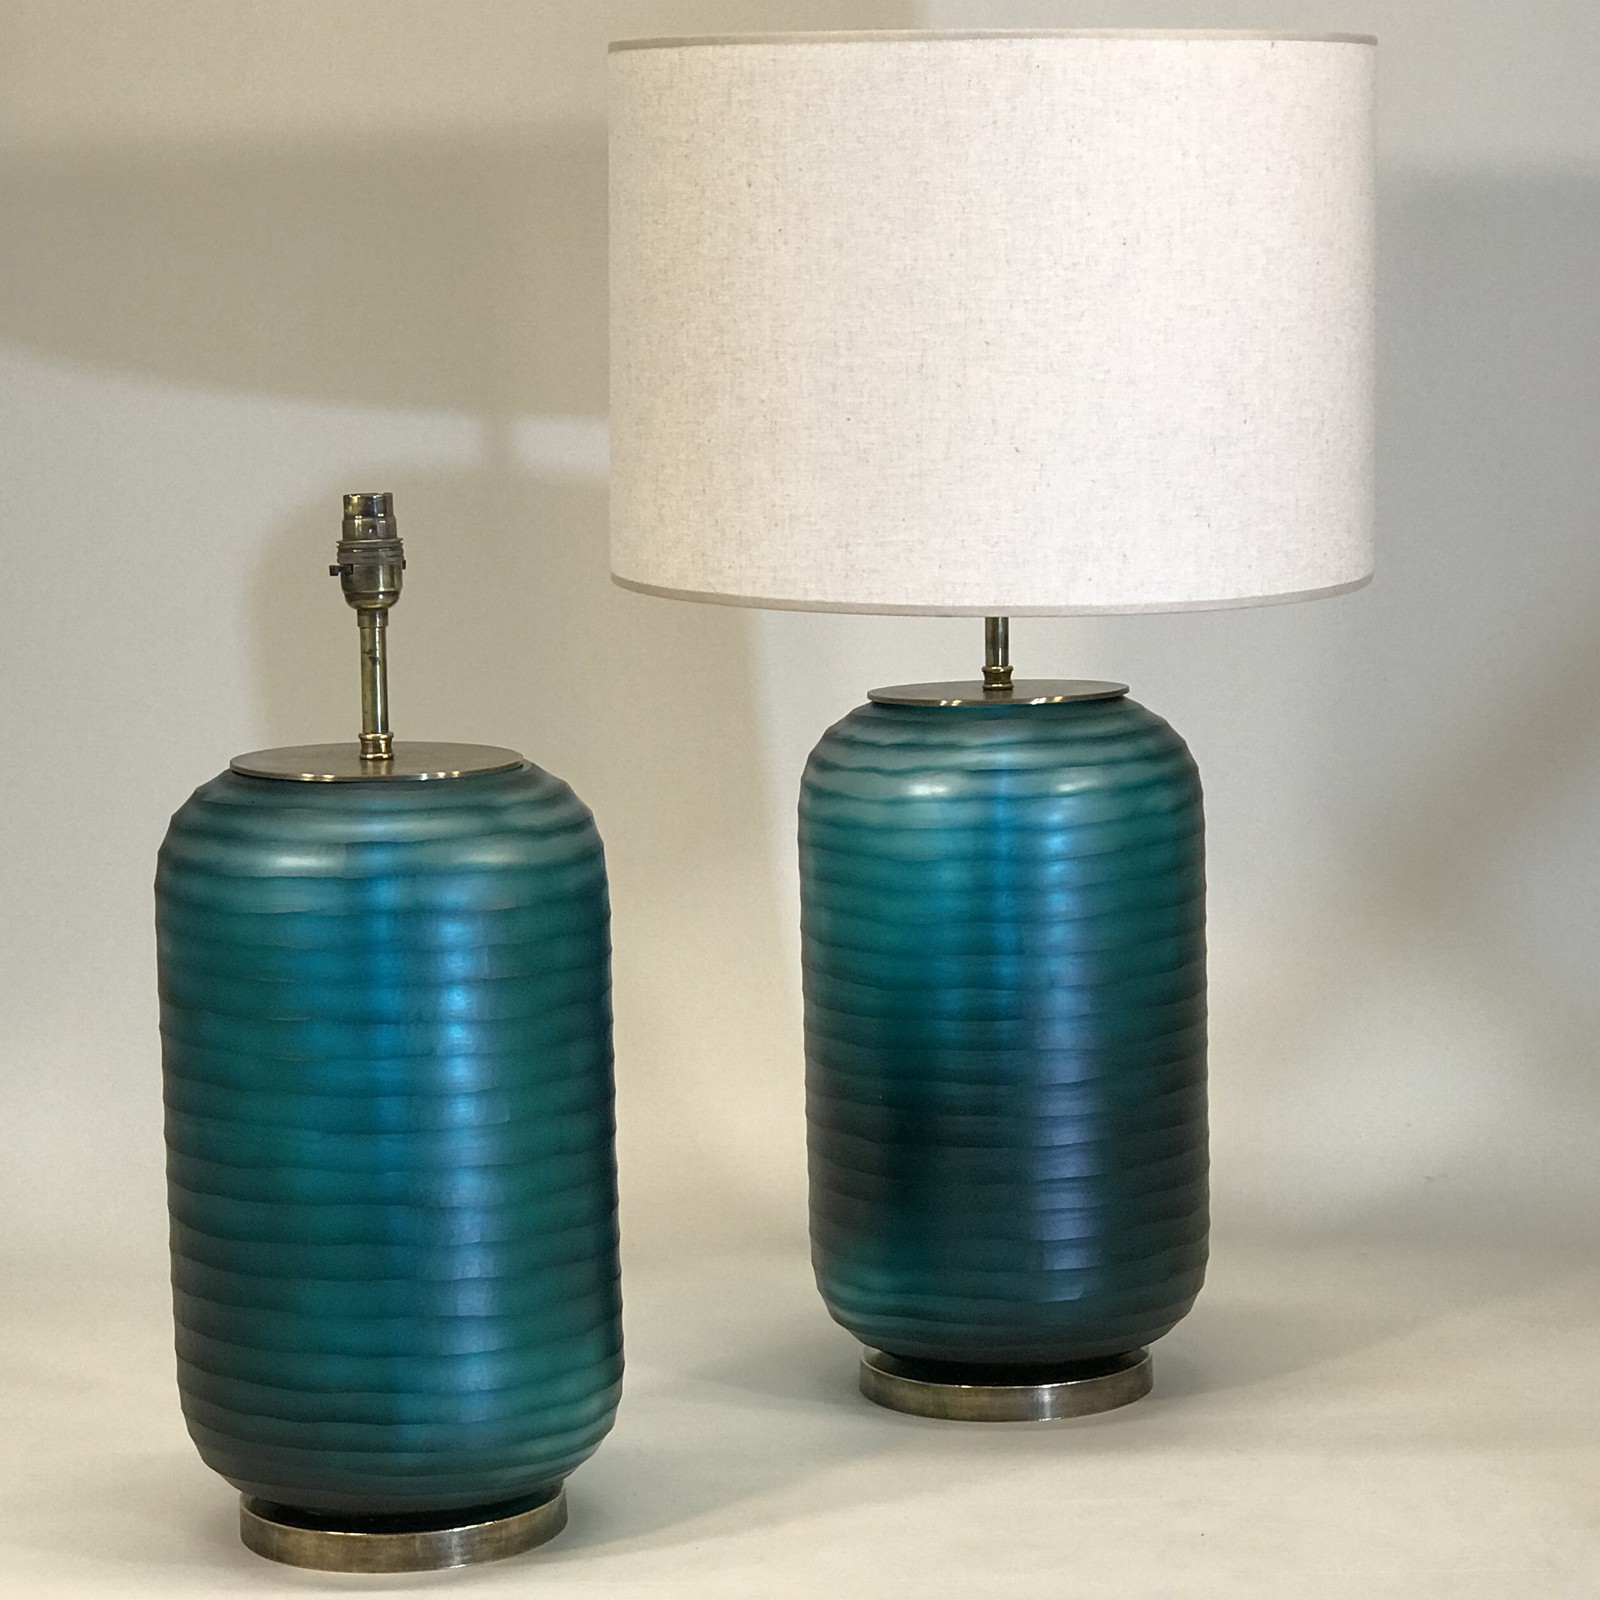 Picture of: Pair Of Large Turquoise Cut Glass Lamps On Antique Brass Bases T5154 Tyson London Decorative Lighting And Furniture